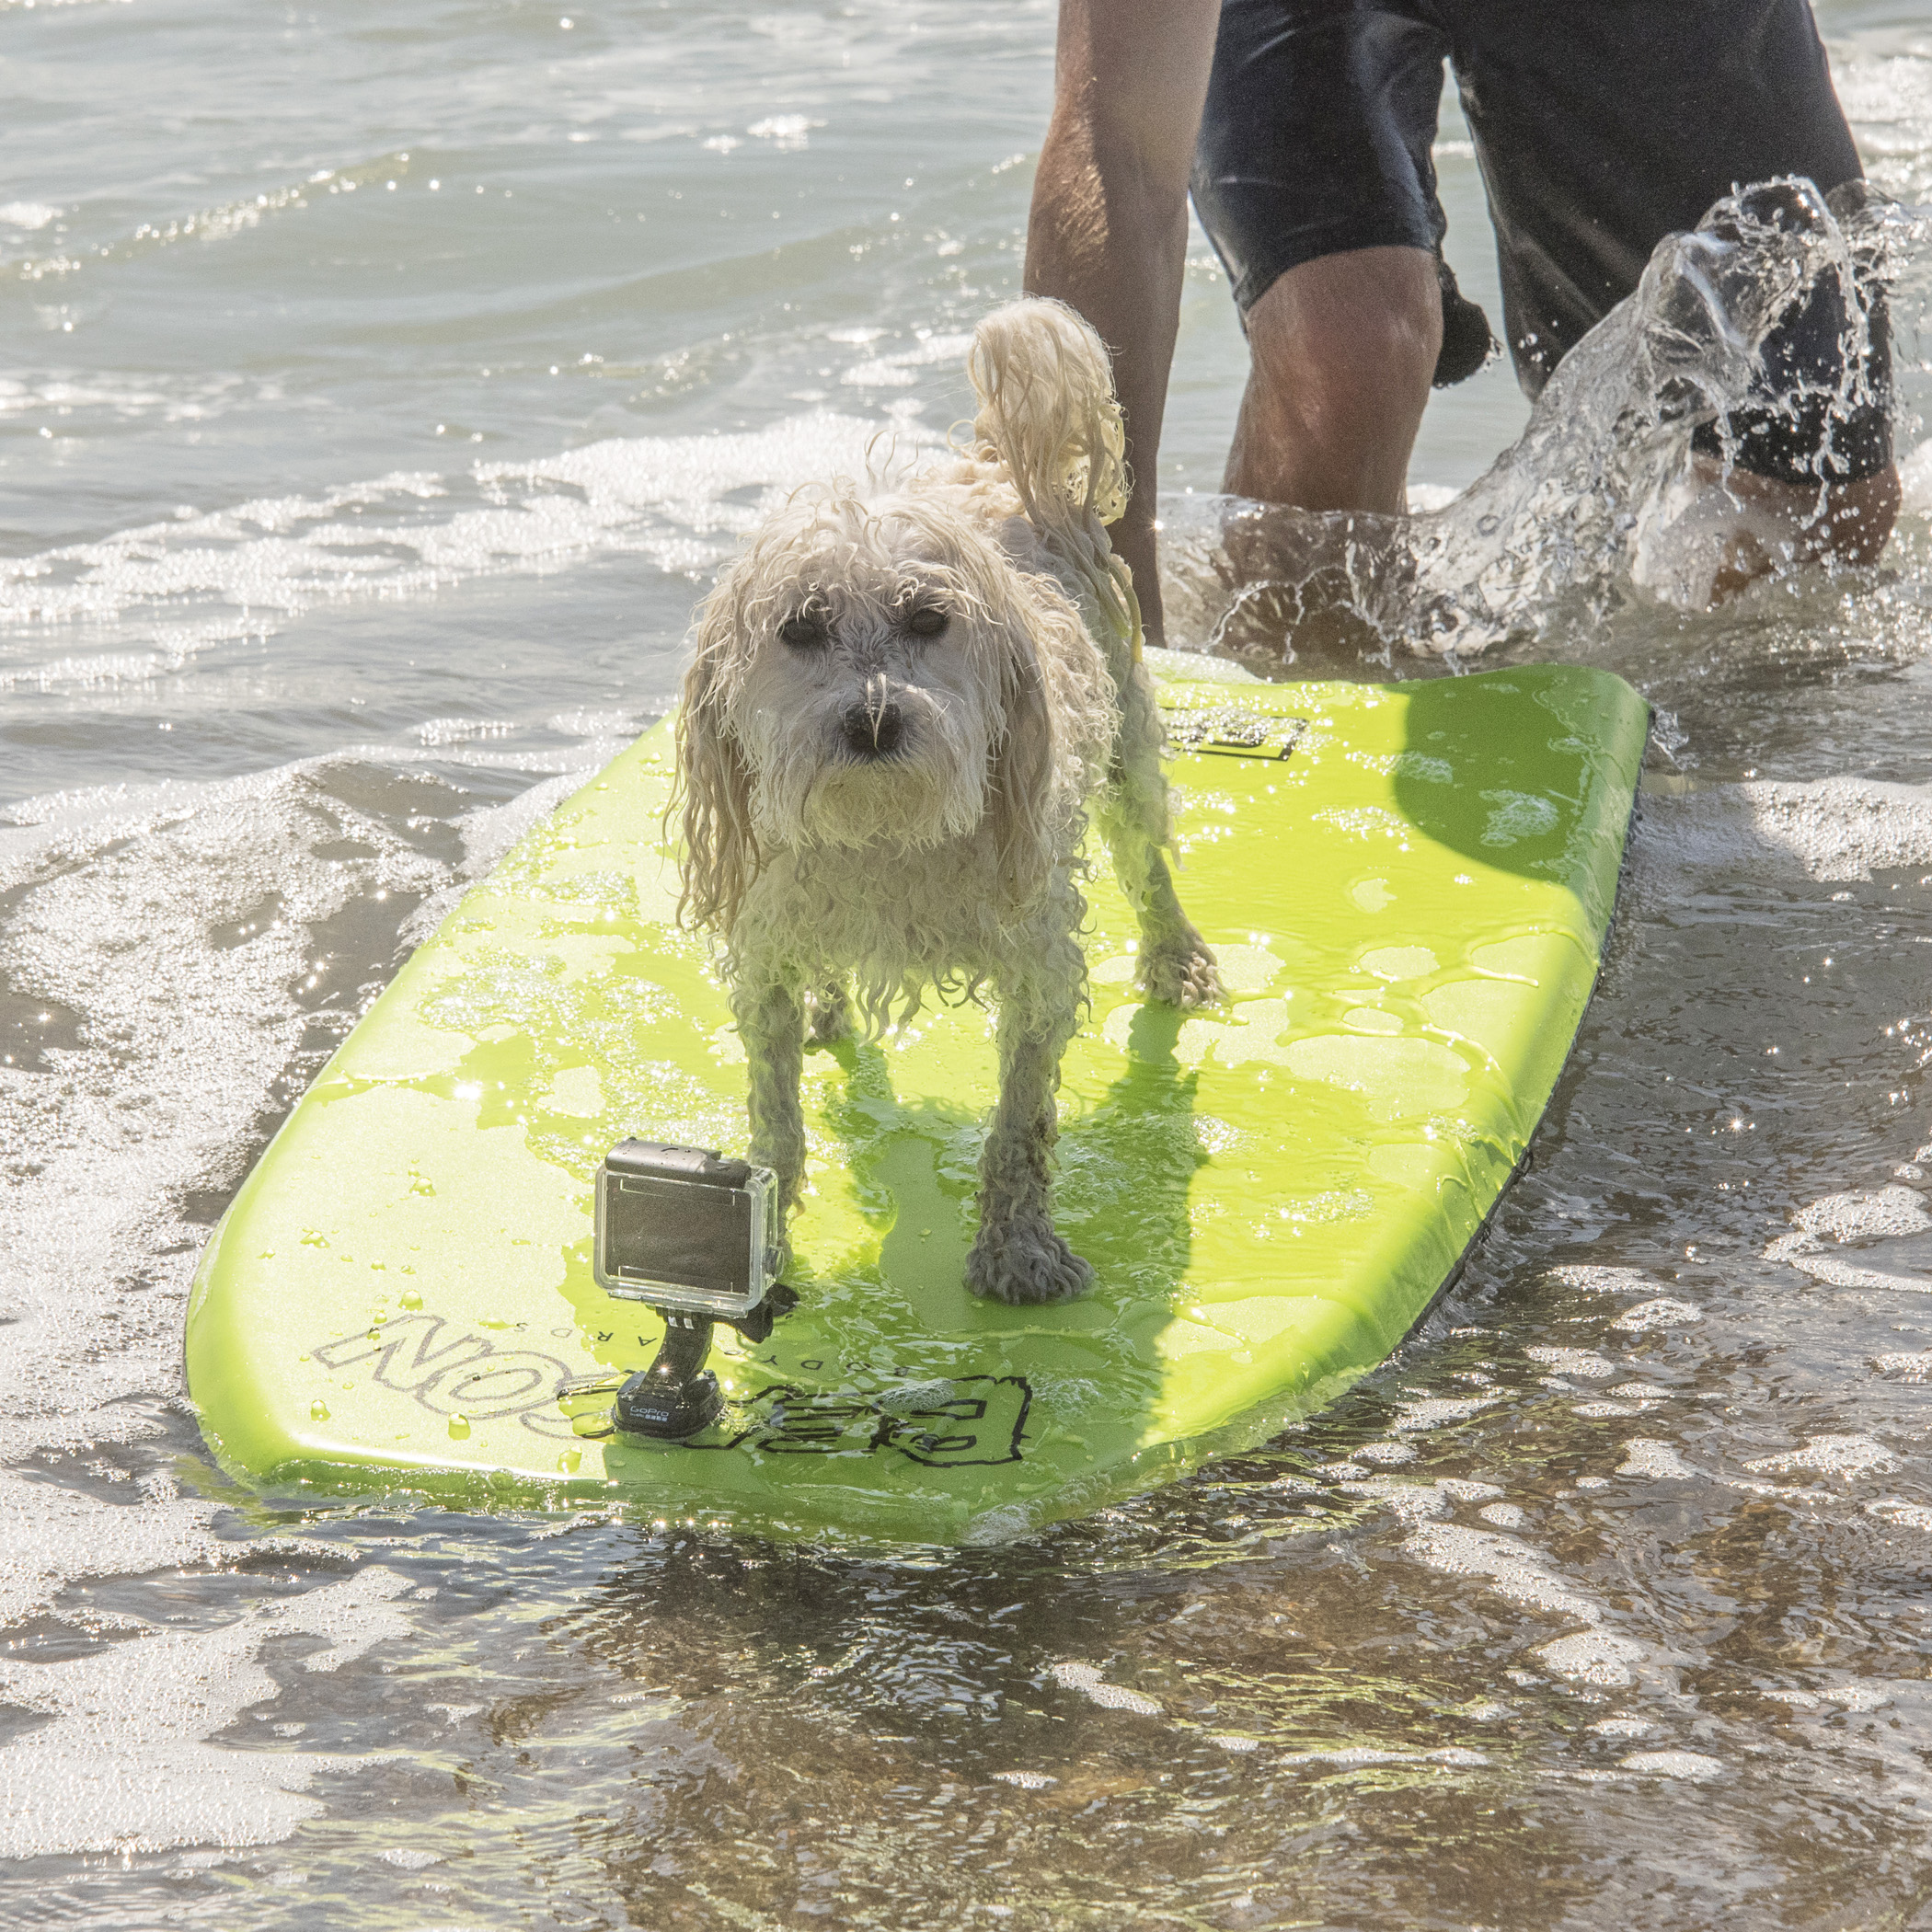 I attempted to learn how to boogie board today!  Let's just say the surf was a bit intense and overpowering for my little guy muscles! But, I gave it the Super B try, and even stayed on for a few quick rides.